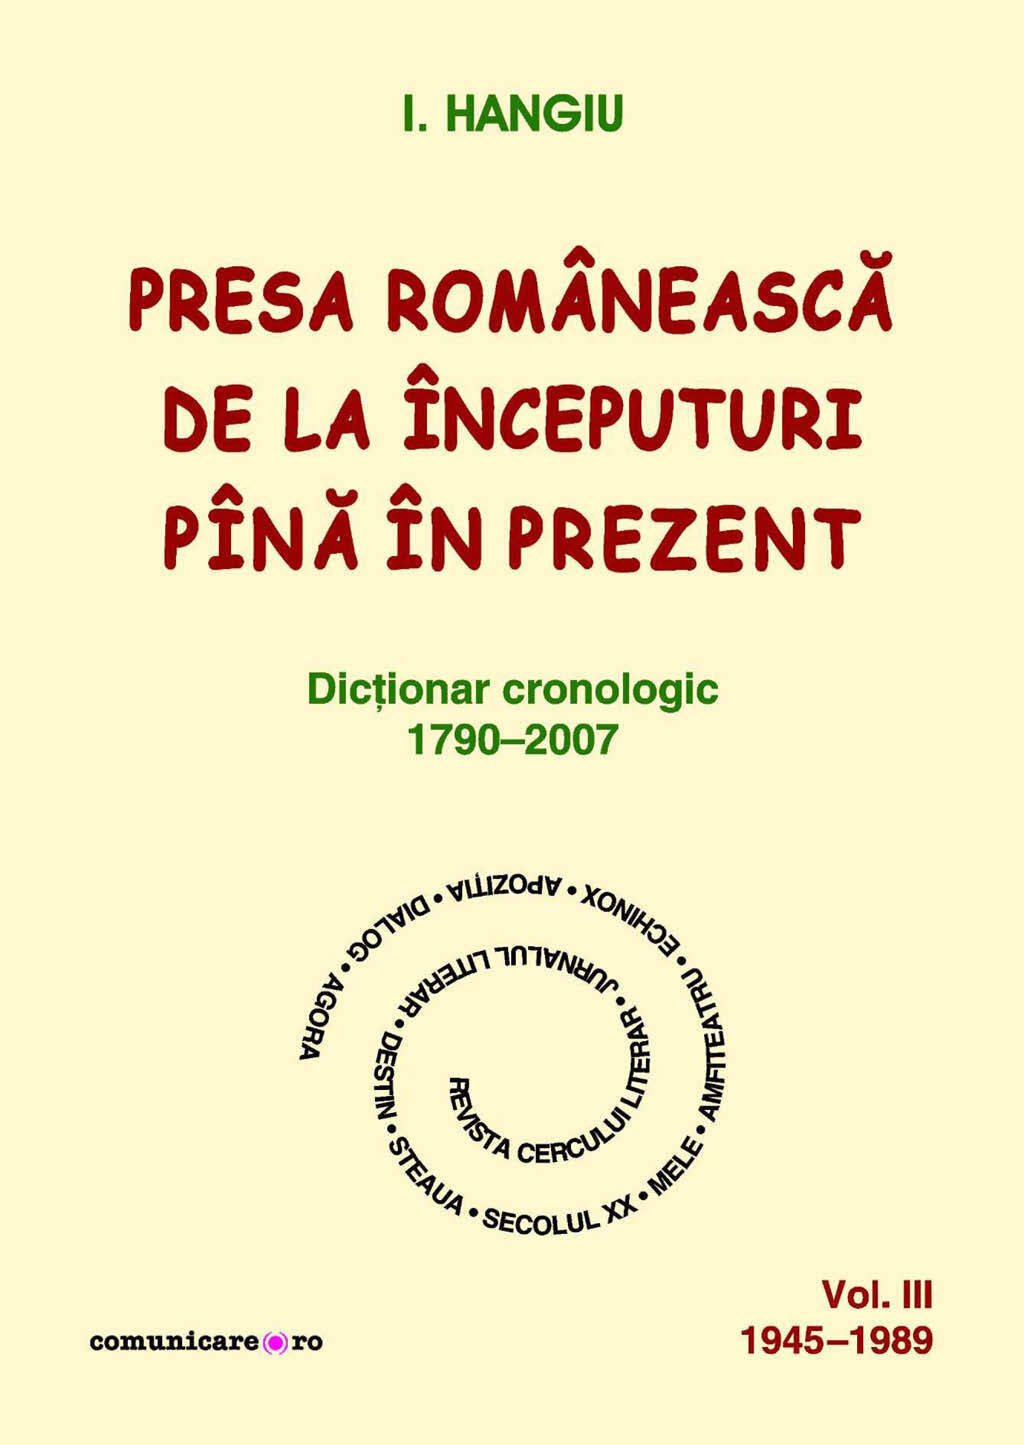 Presa romaneasca de la inceputuri pina in prezent. Dictionar cronologic 1790-2007 (Vol. III, 1945-1989) (eBook)